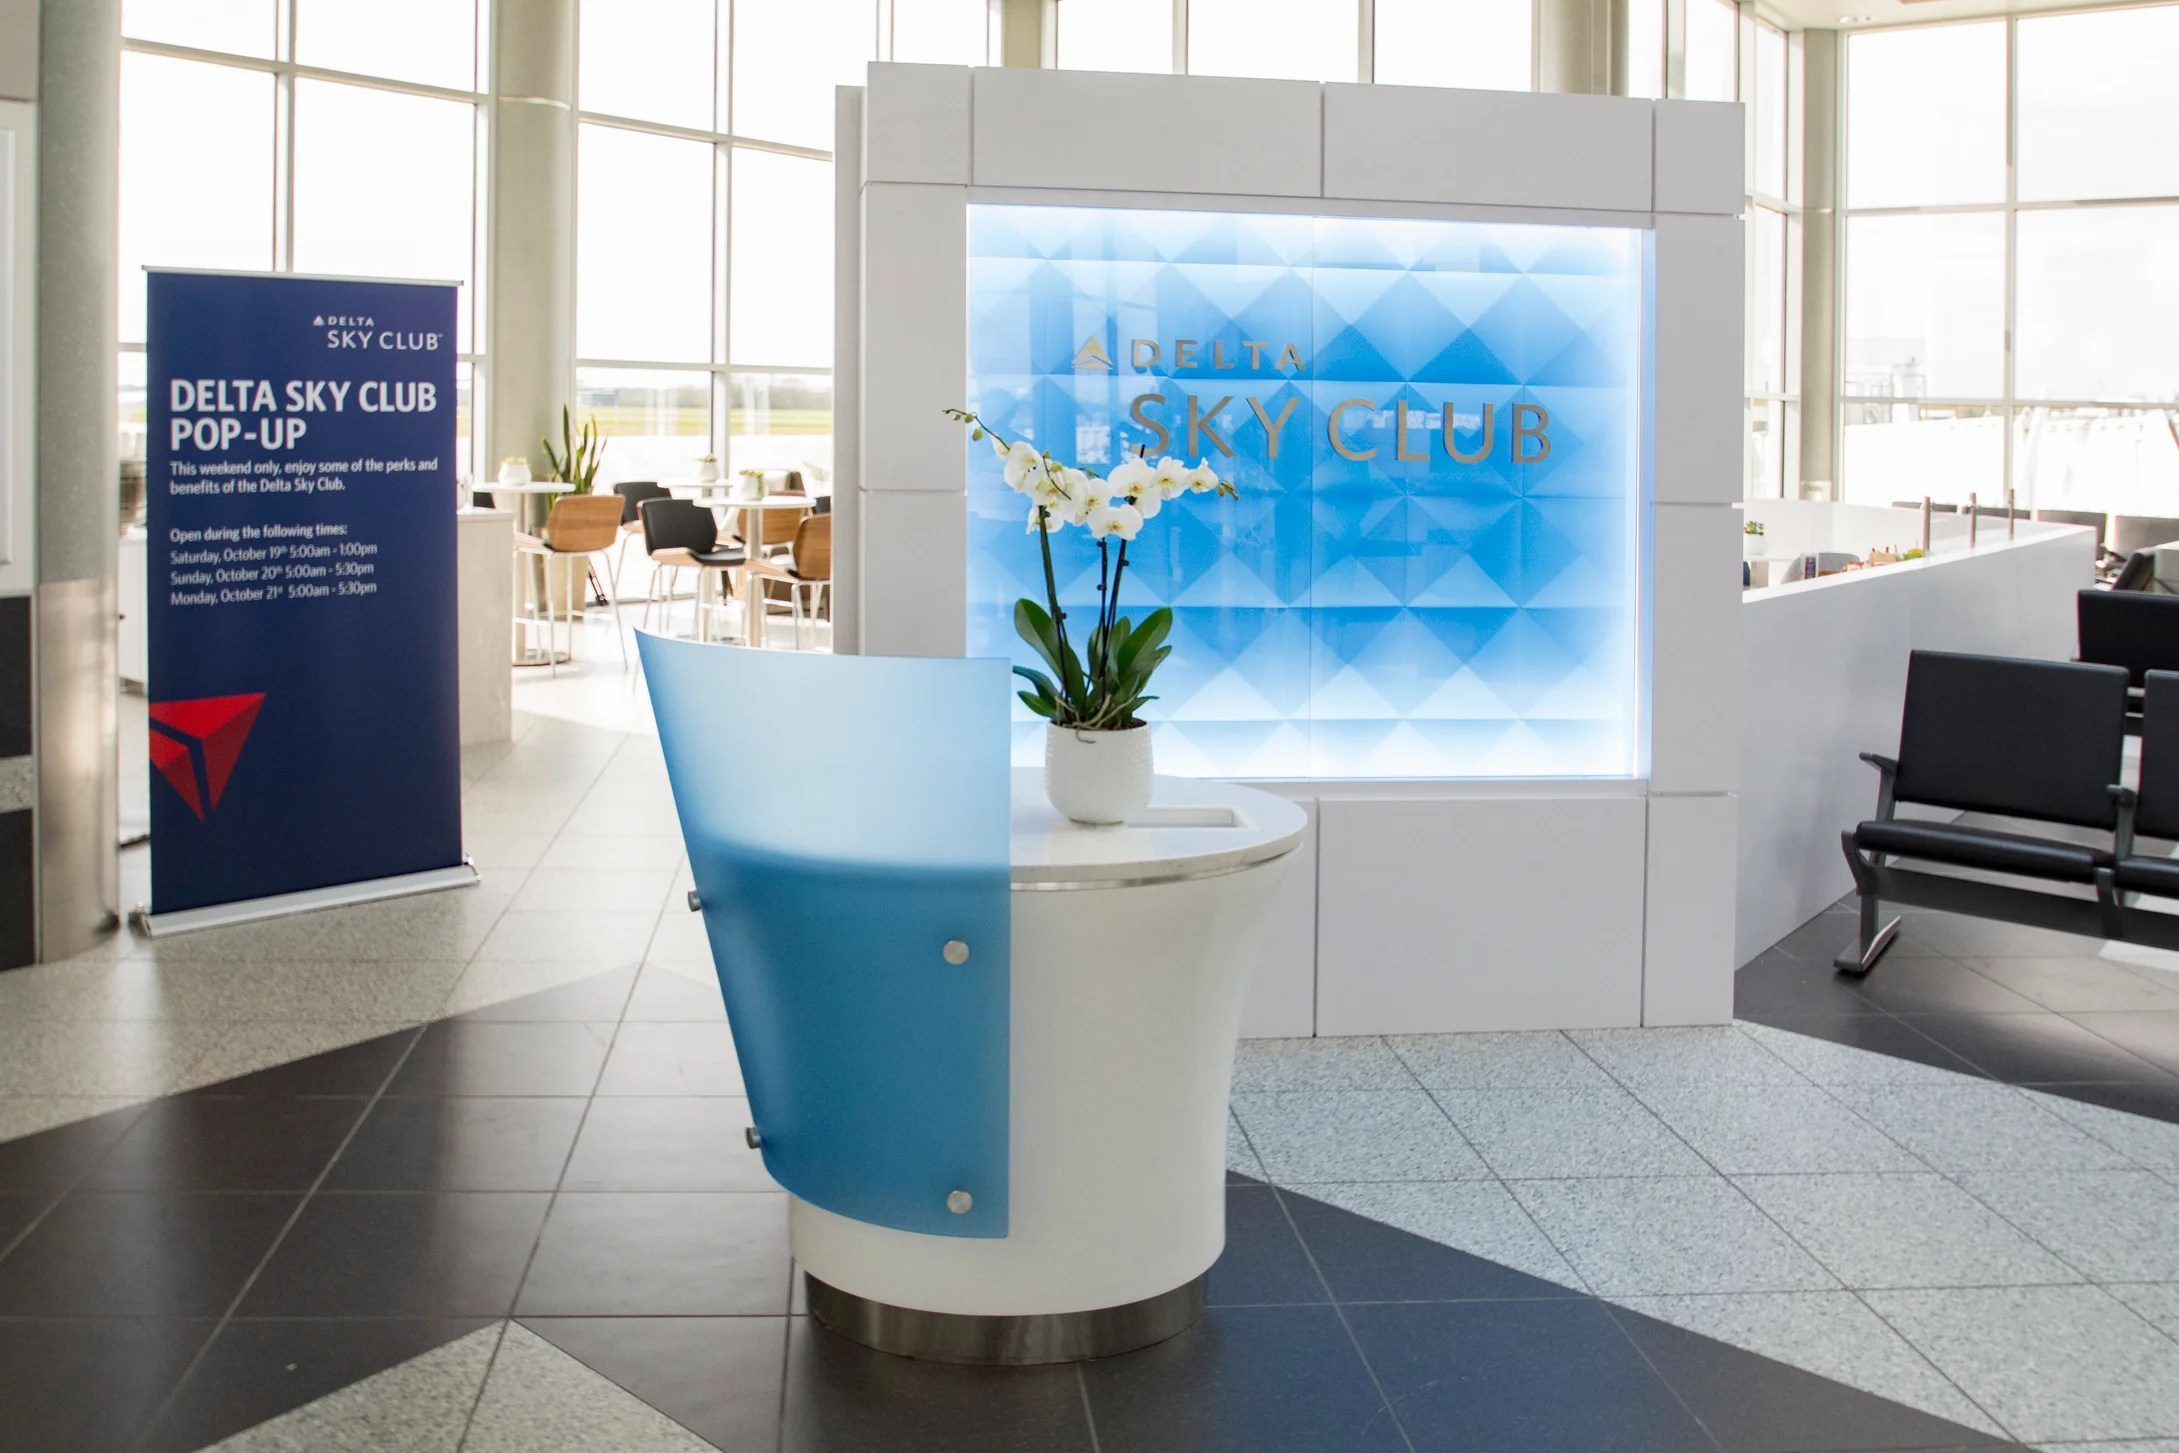 Delta surprises passengers with pop-up Sky Clubs